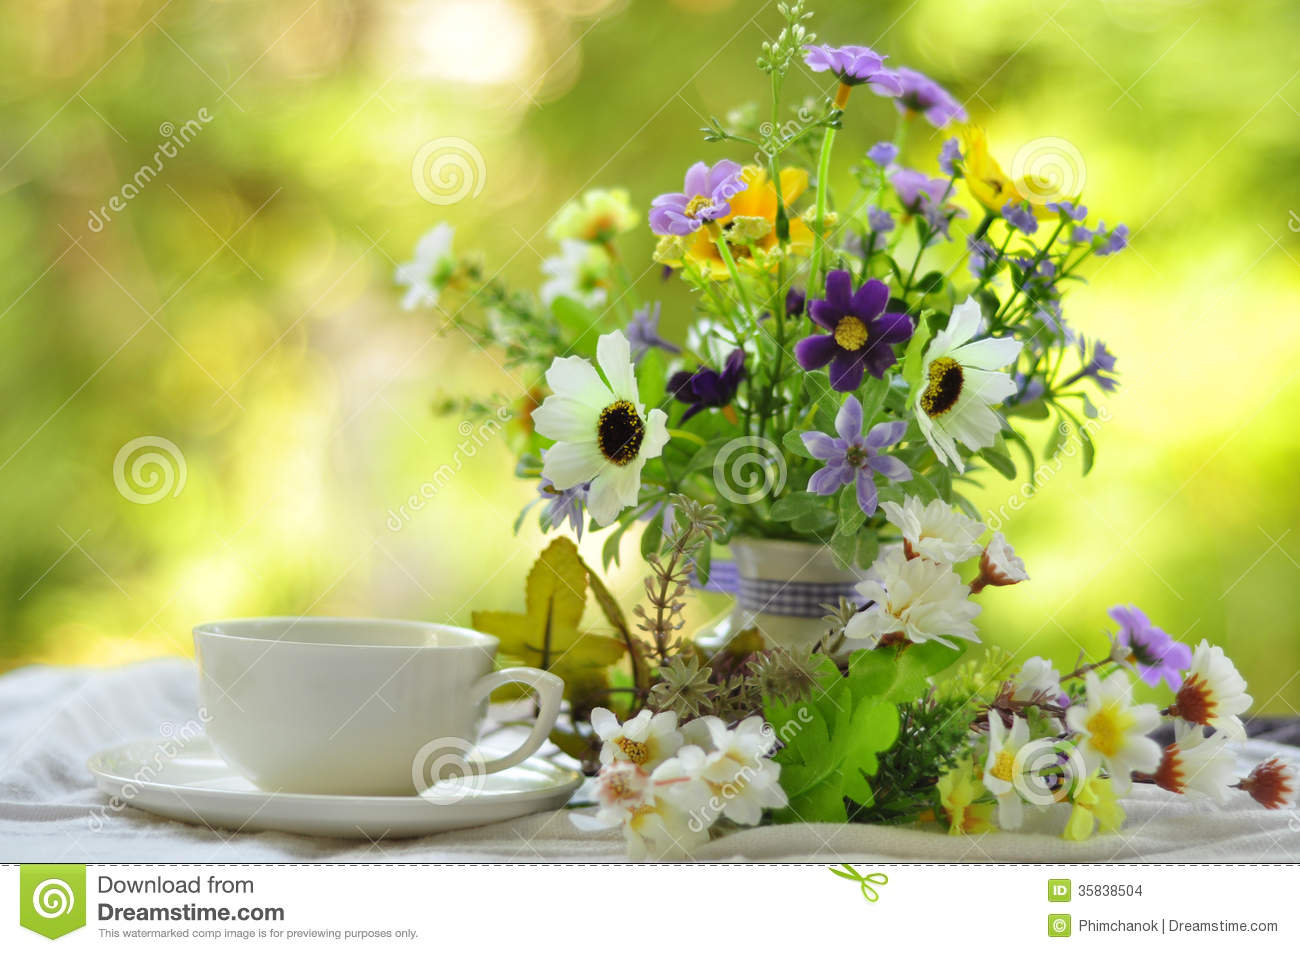 Bouquet of flowers stock photo image of refreshment 35838504 bouquet of flowers refreshment beautiful izmirmasajfo